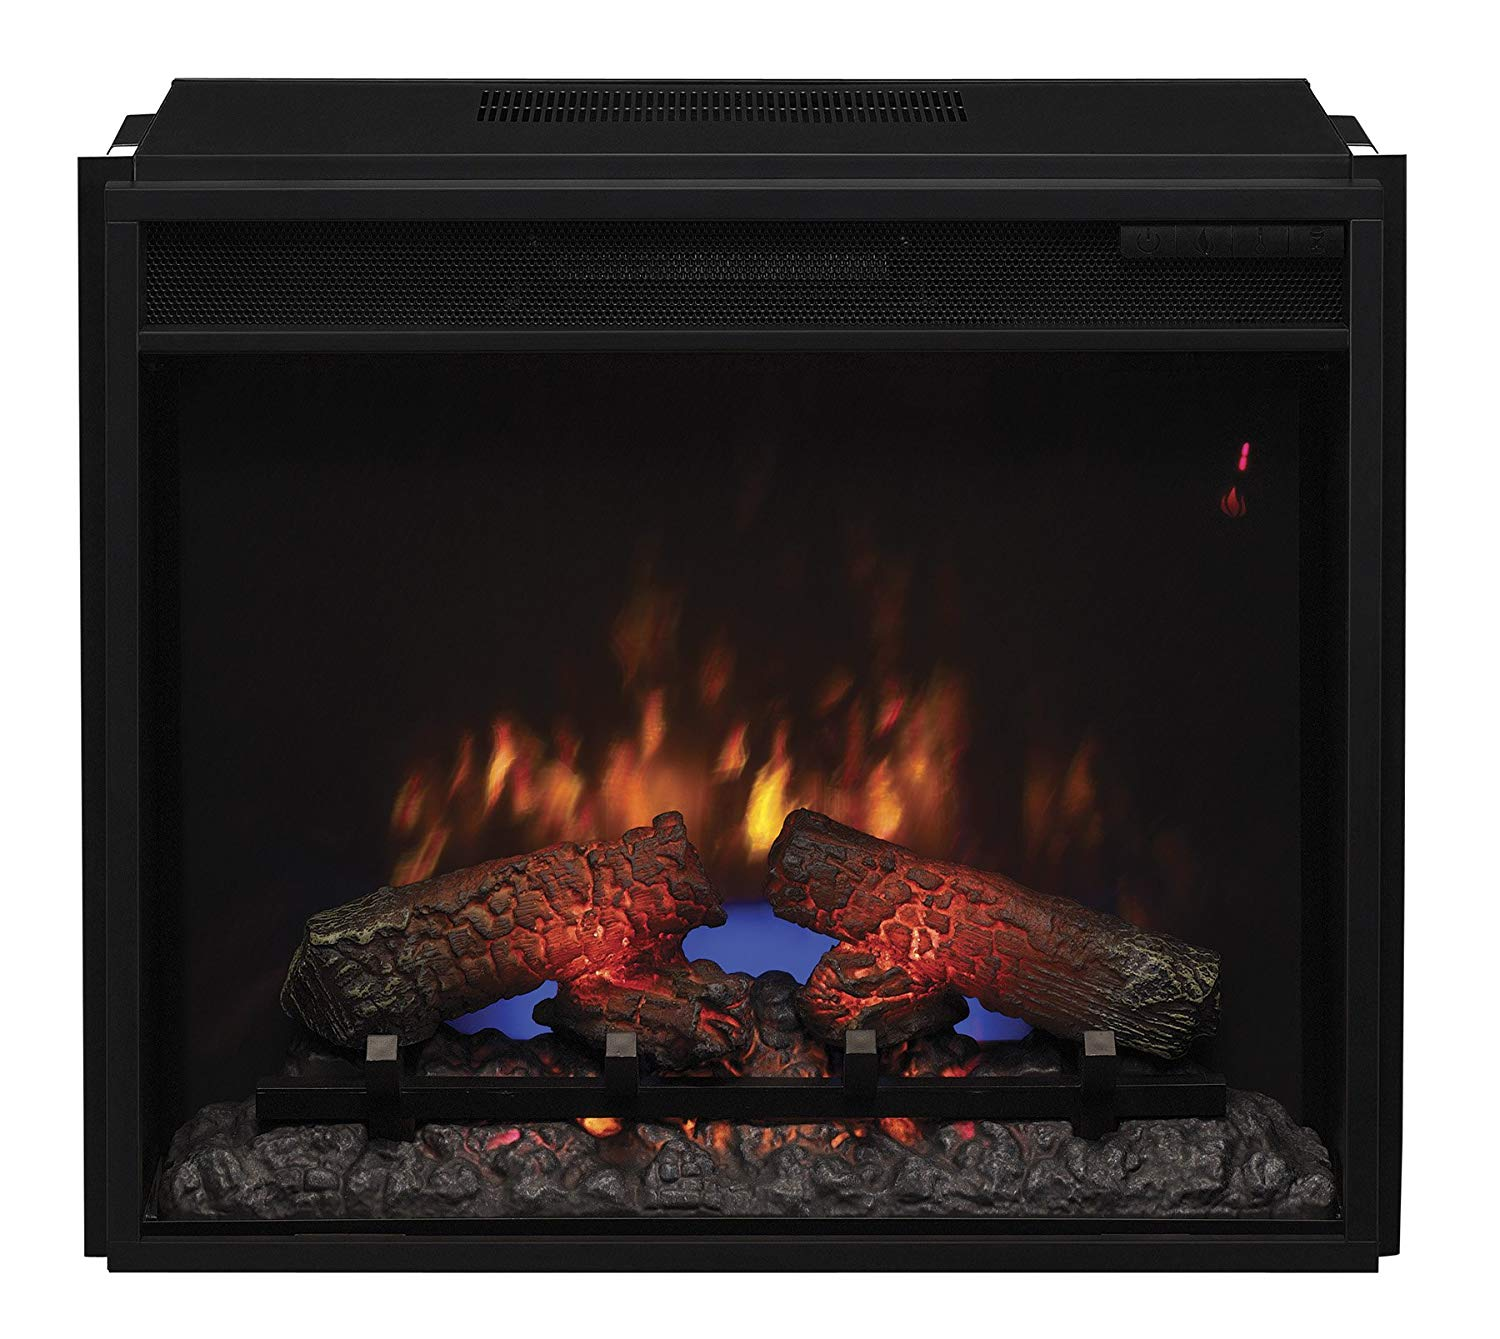 """Charmglow Gas Fireplace Awesome Classicflame 23ef031grp 23"""" Electric Fireplace Insert with Safer Plug"""